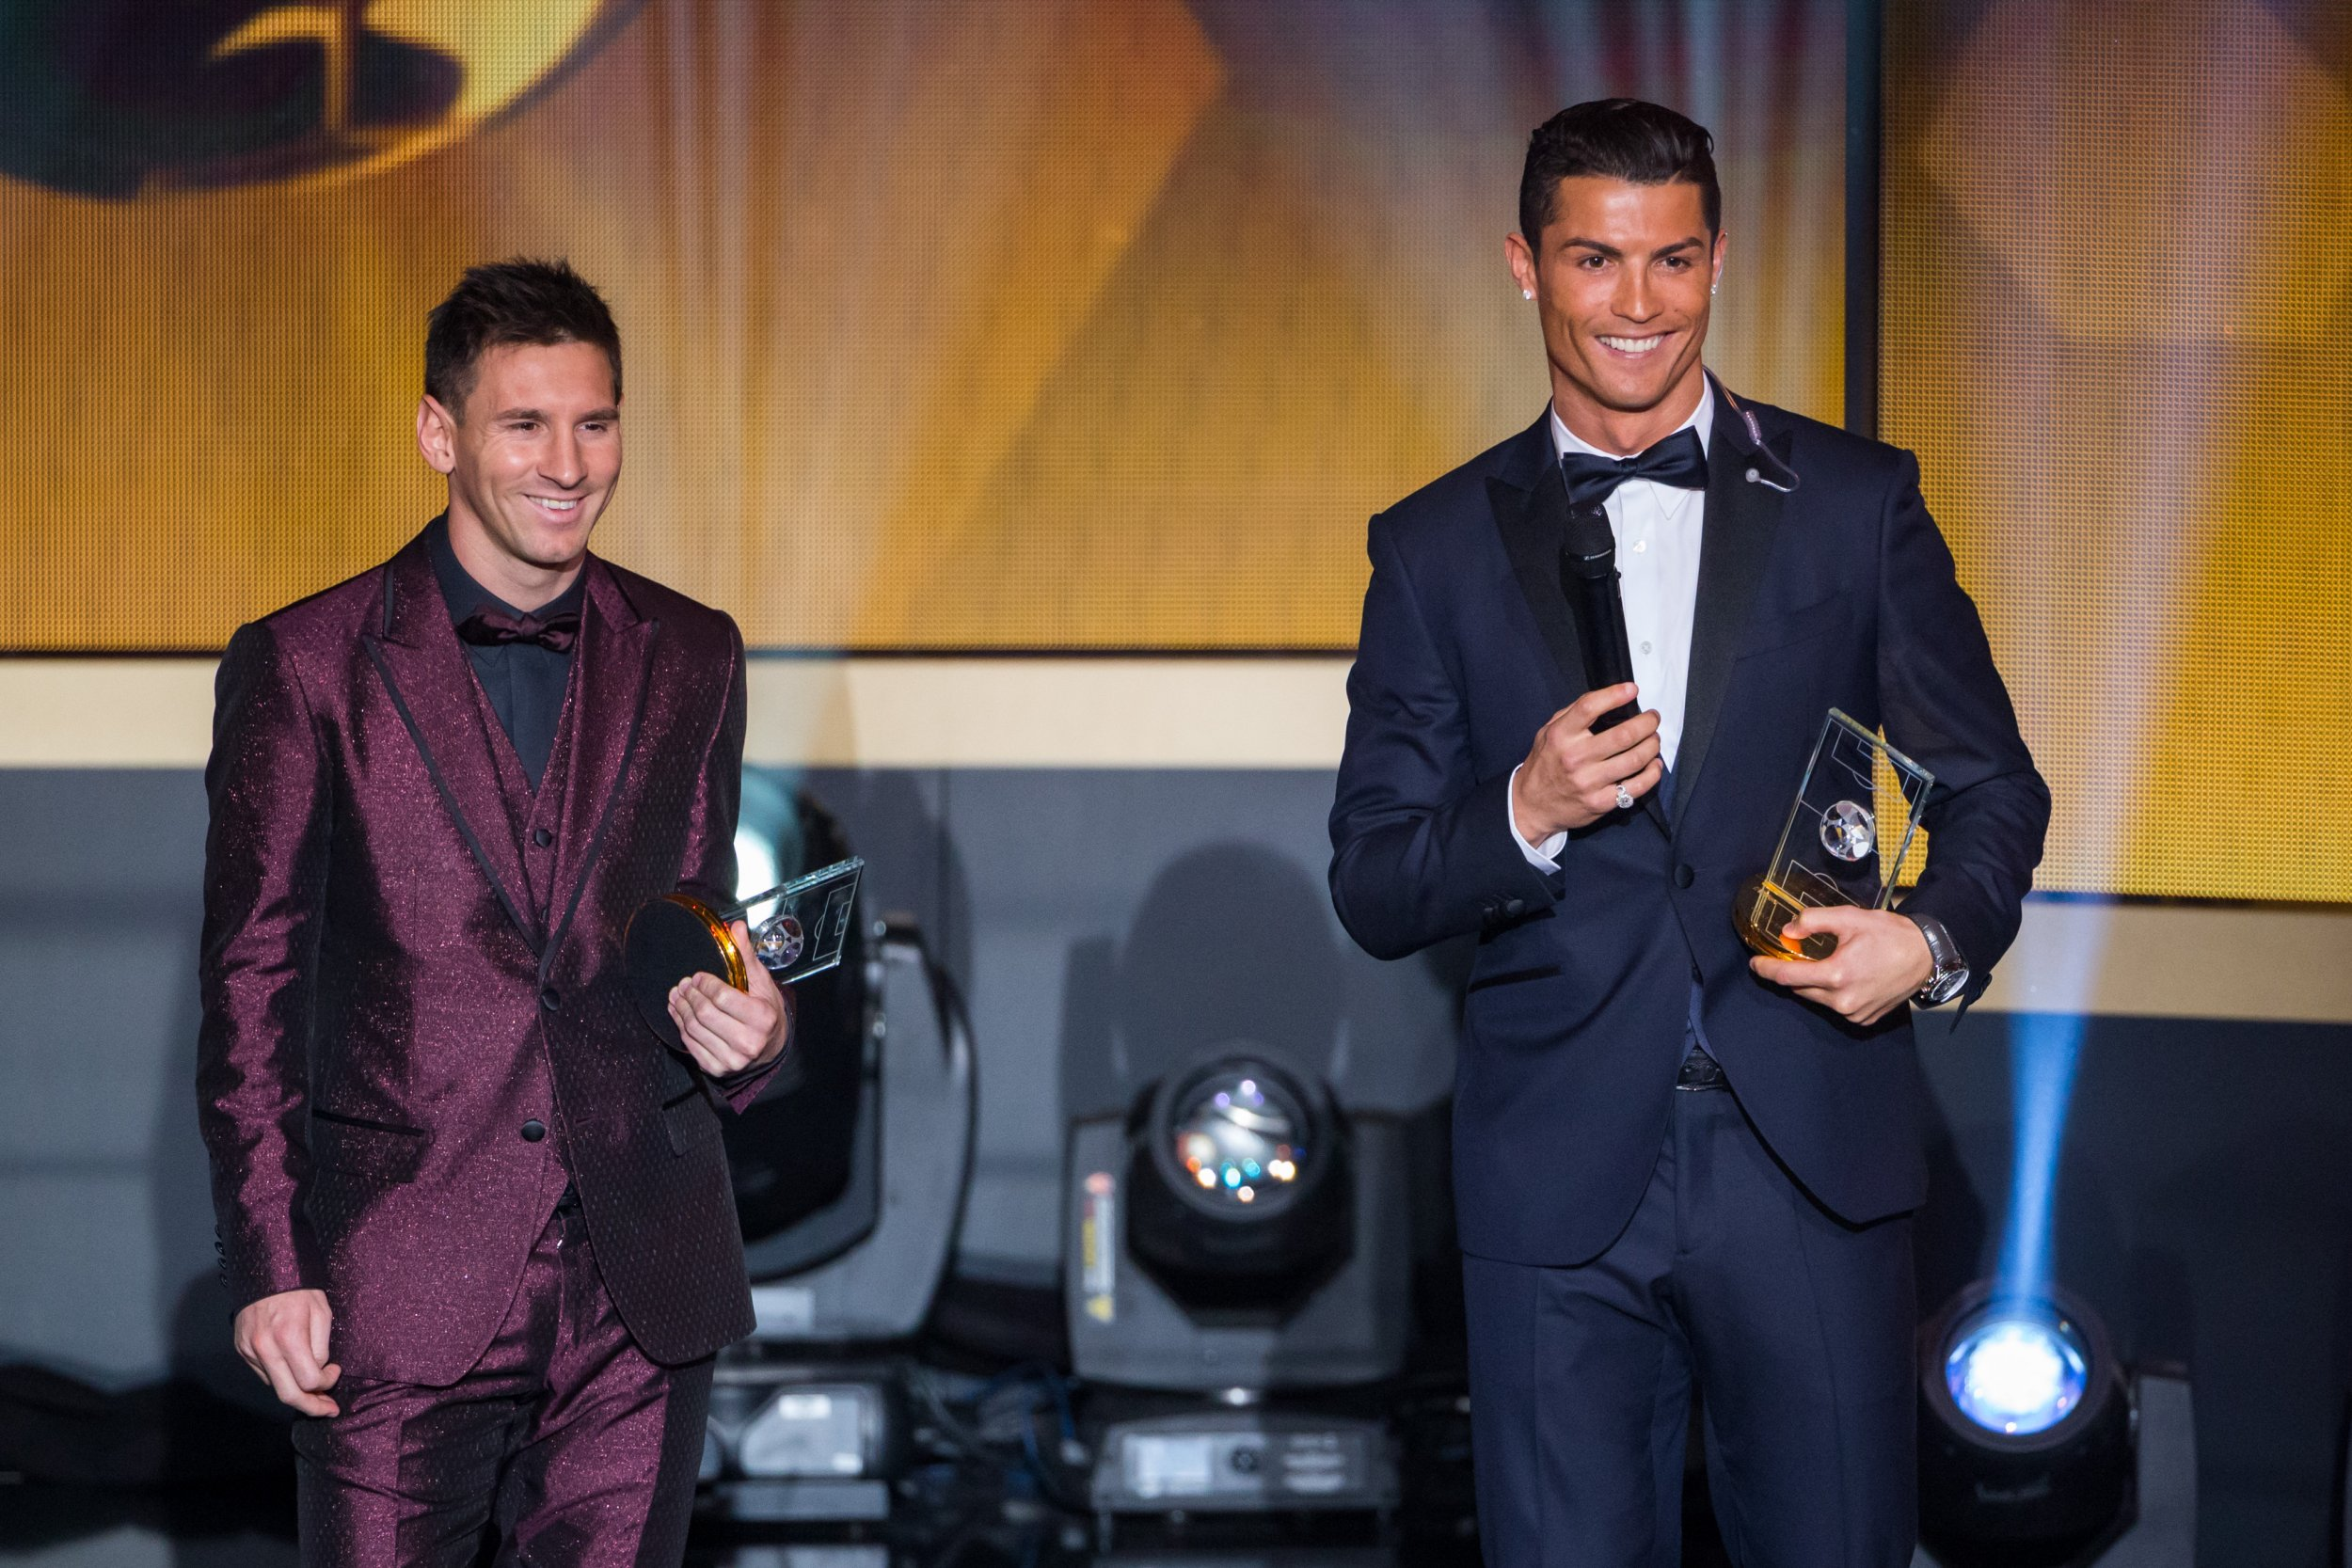 Lionel Messi, left, and Cristiano Ronaldo are recognized as the world's two best footballers.